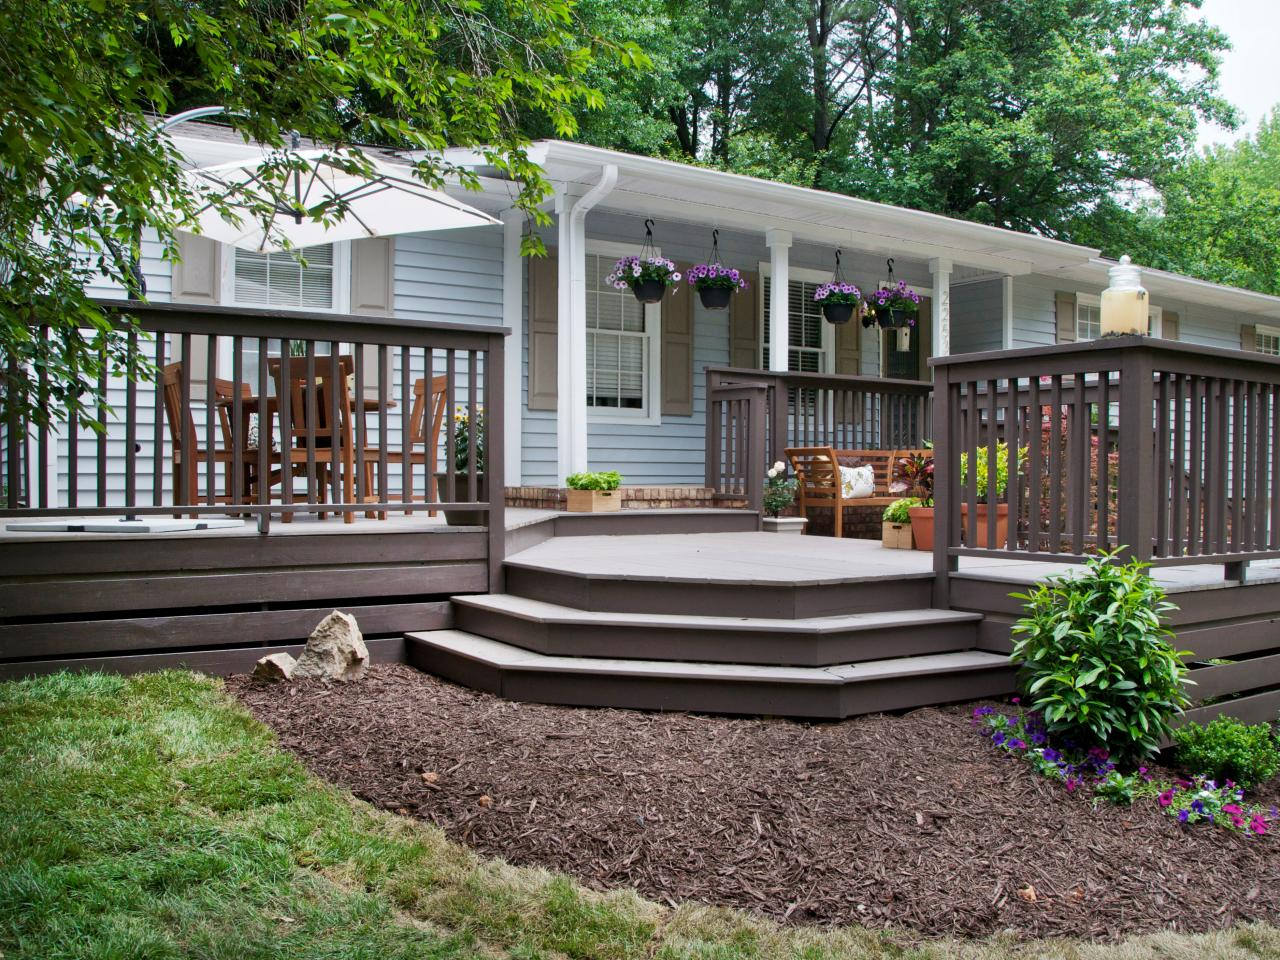 Photos hgtv for Front porch patio ideas